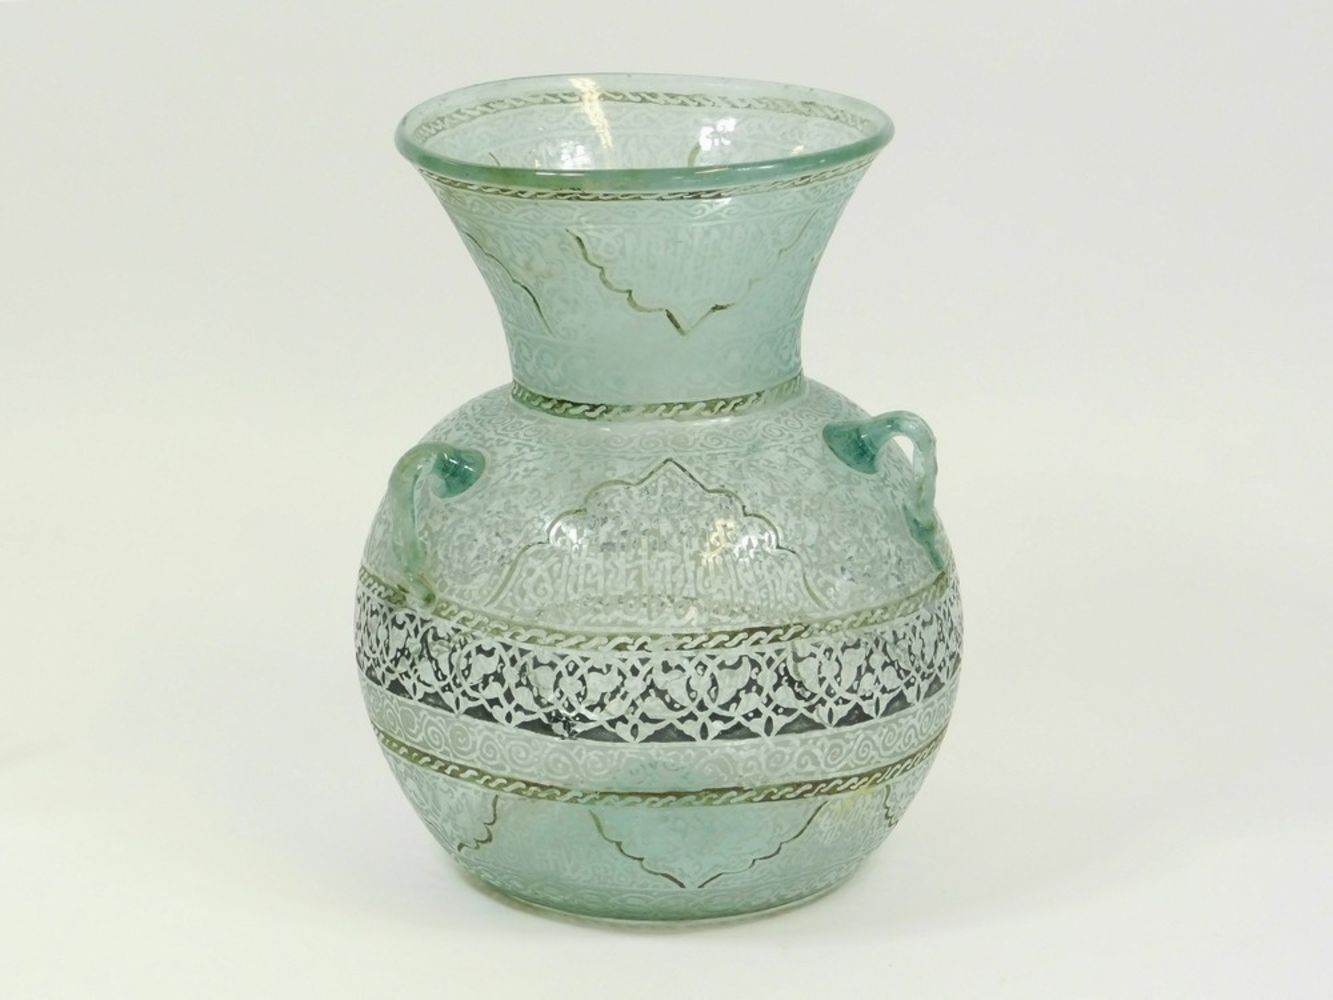 TWO-DAY ONLINE ONLY AUCTION OF ANTIQUES, COLLECTORS ITEMS, PAINTINGS & OTHER ART, STUDIO POTTERY